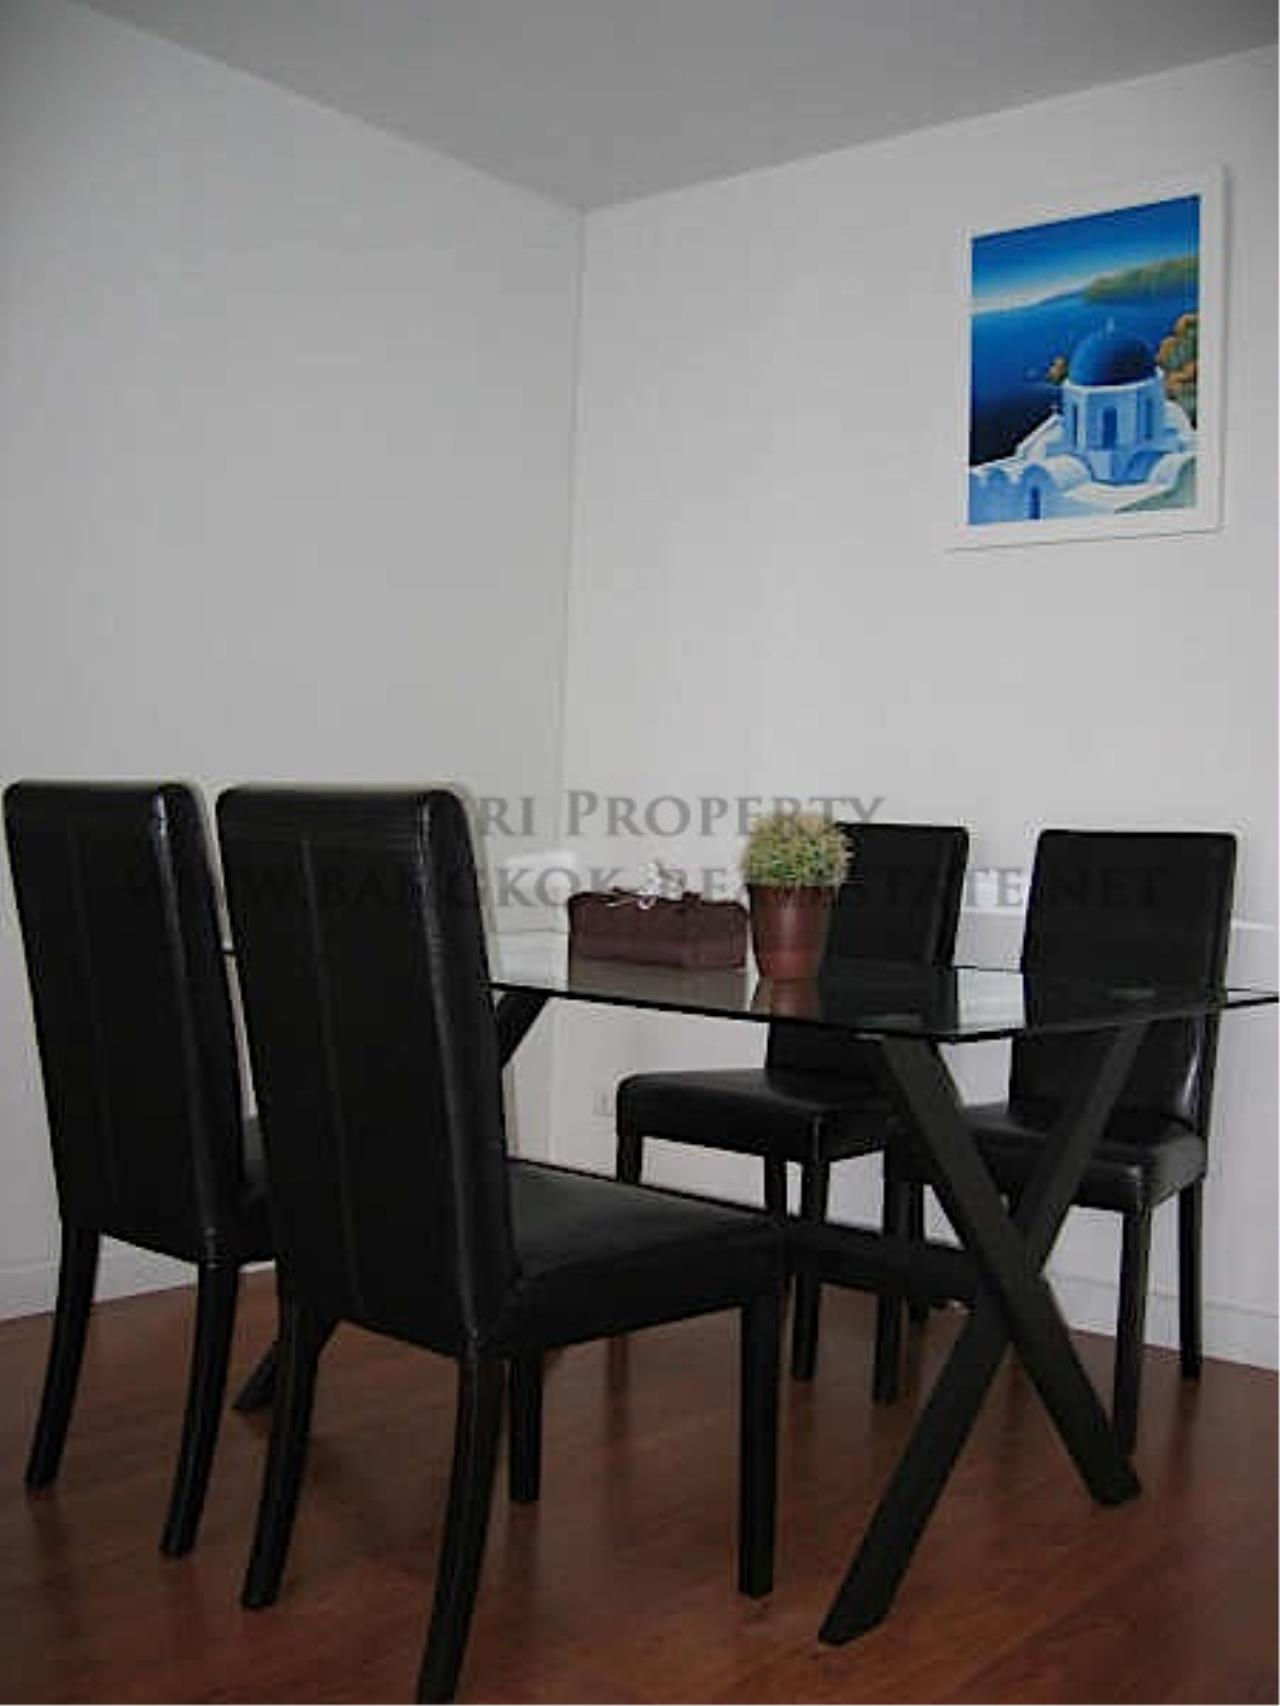 Piri Property Agency's Condo One X - Nicely furnished One Bedroom 6